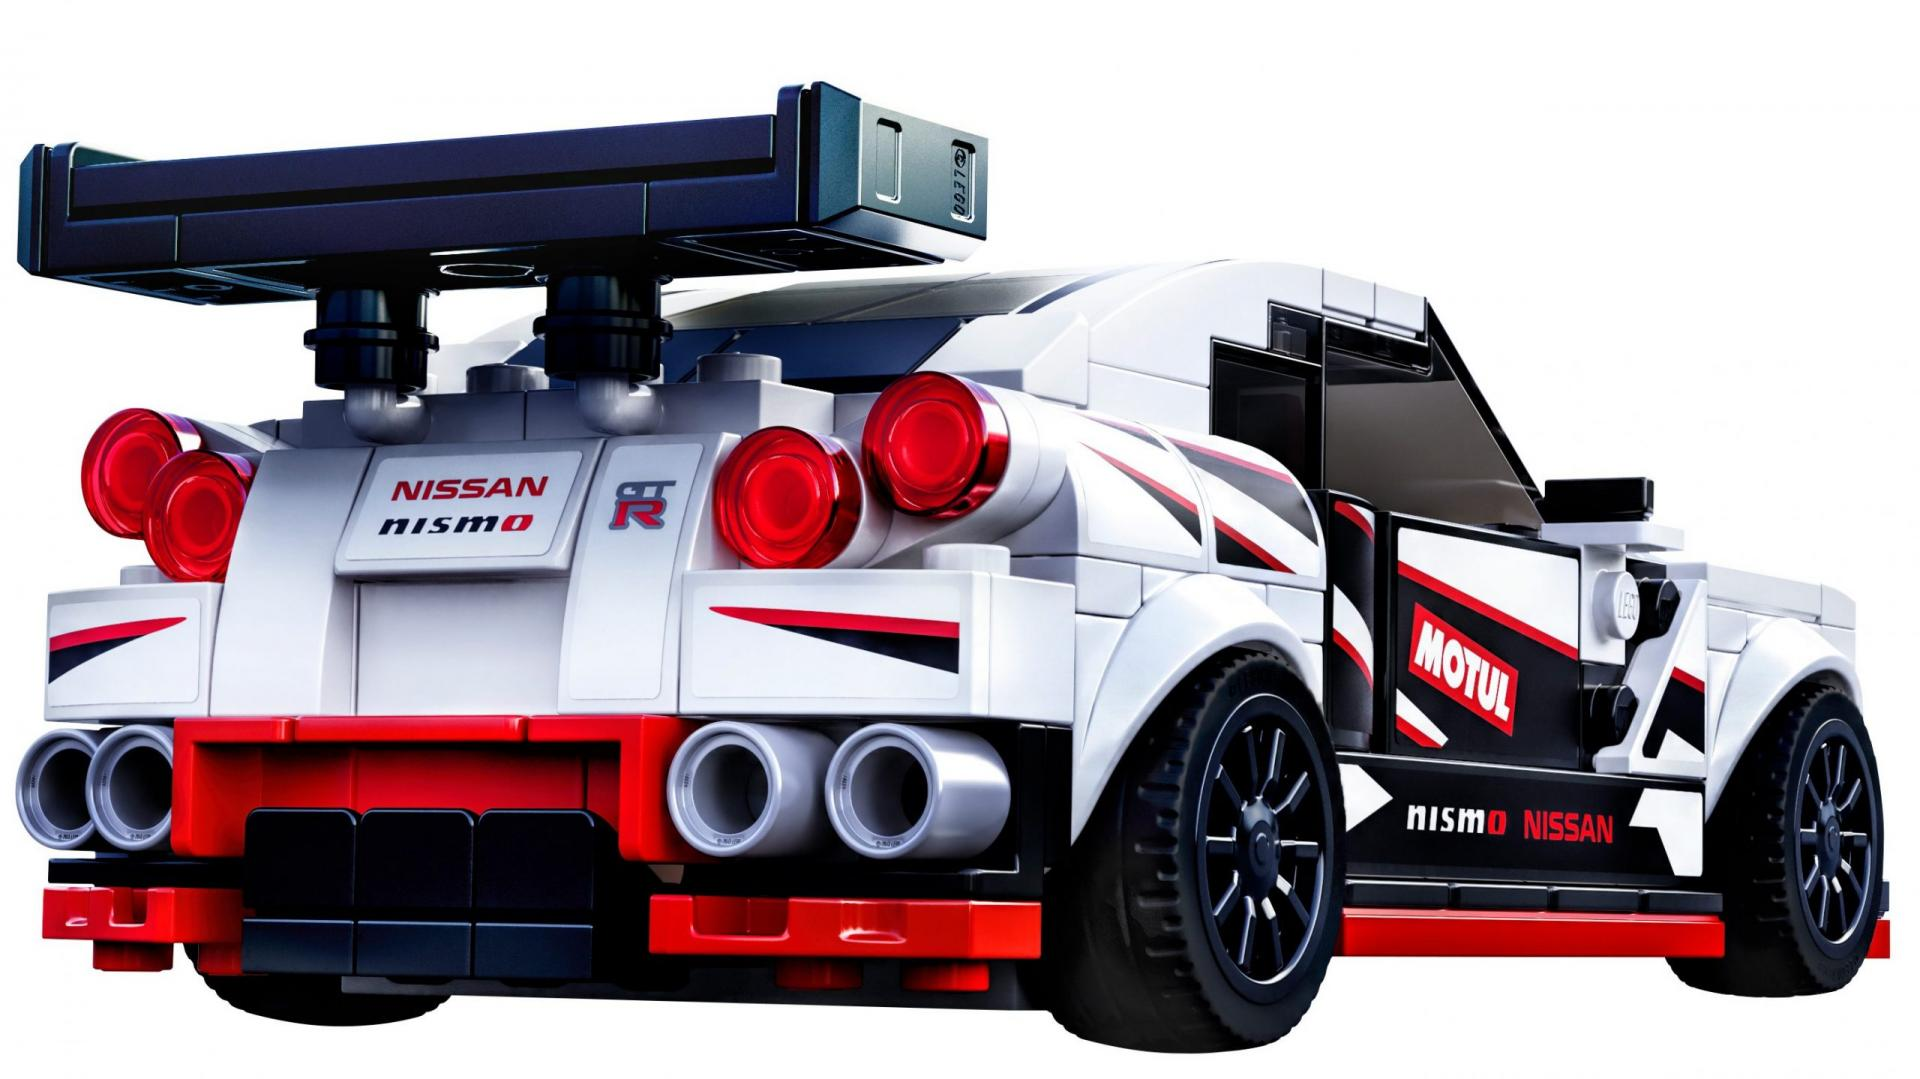 Lego Nissan GT-R Nismo 2020 3 4 achter